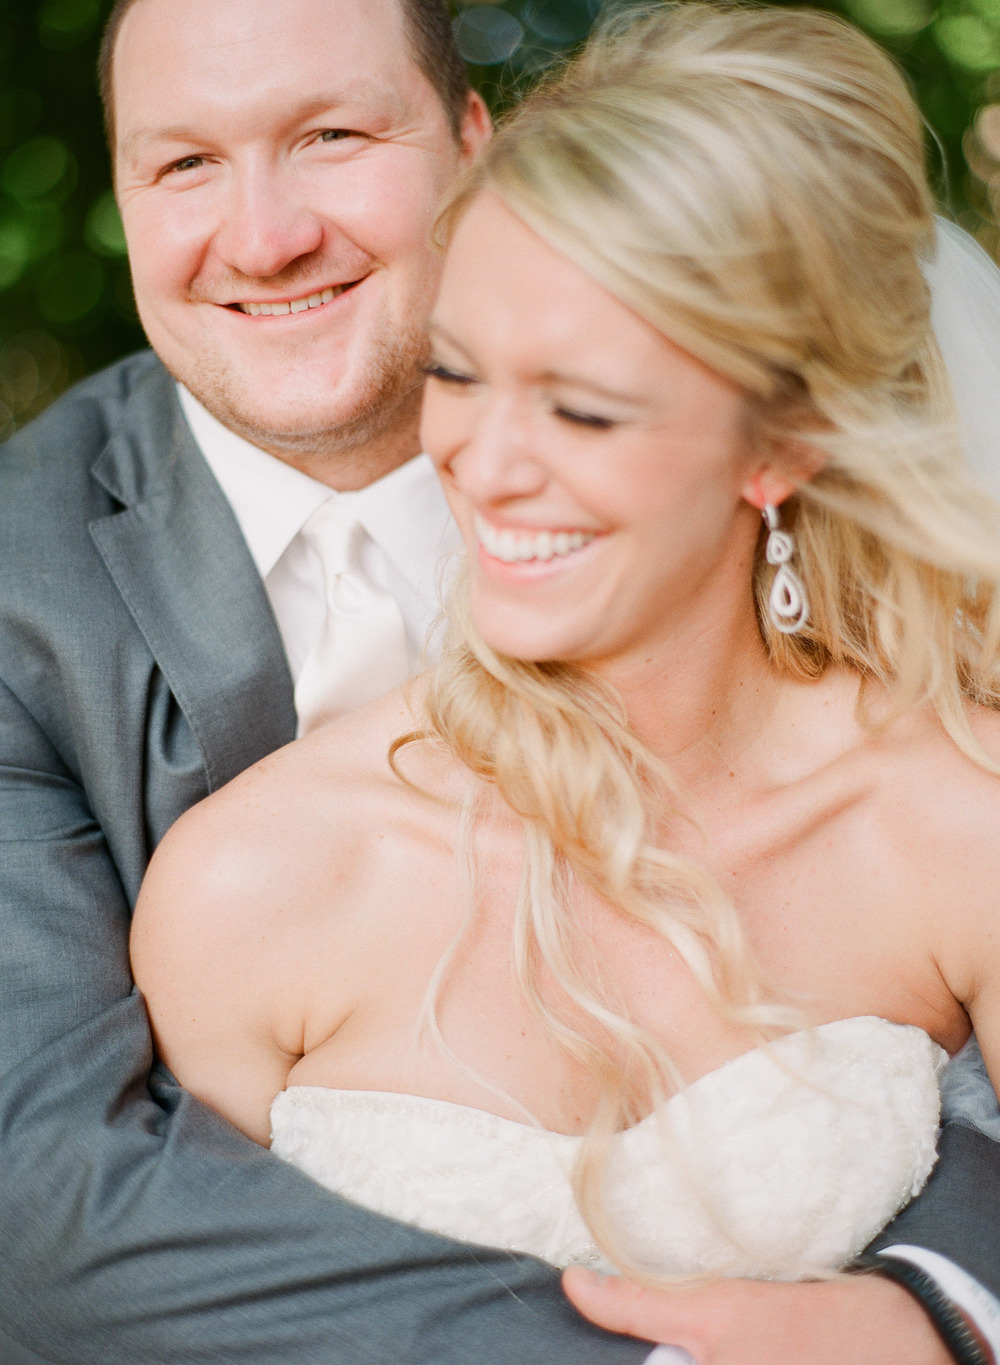 Nfl Star Bryan Bulaga Of The Green Bay Packers Marries